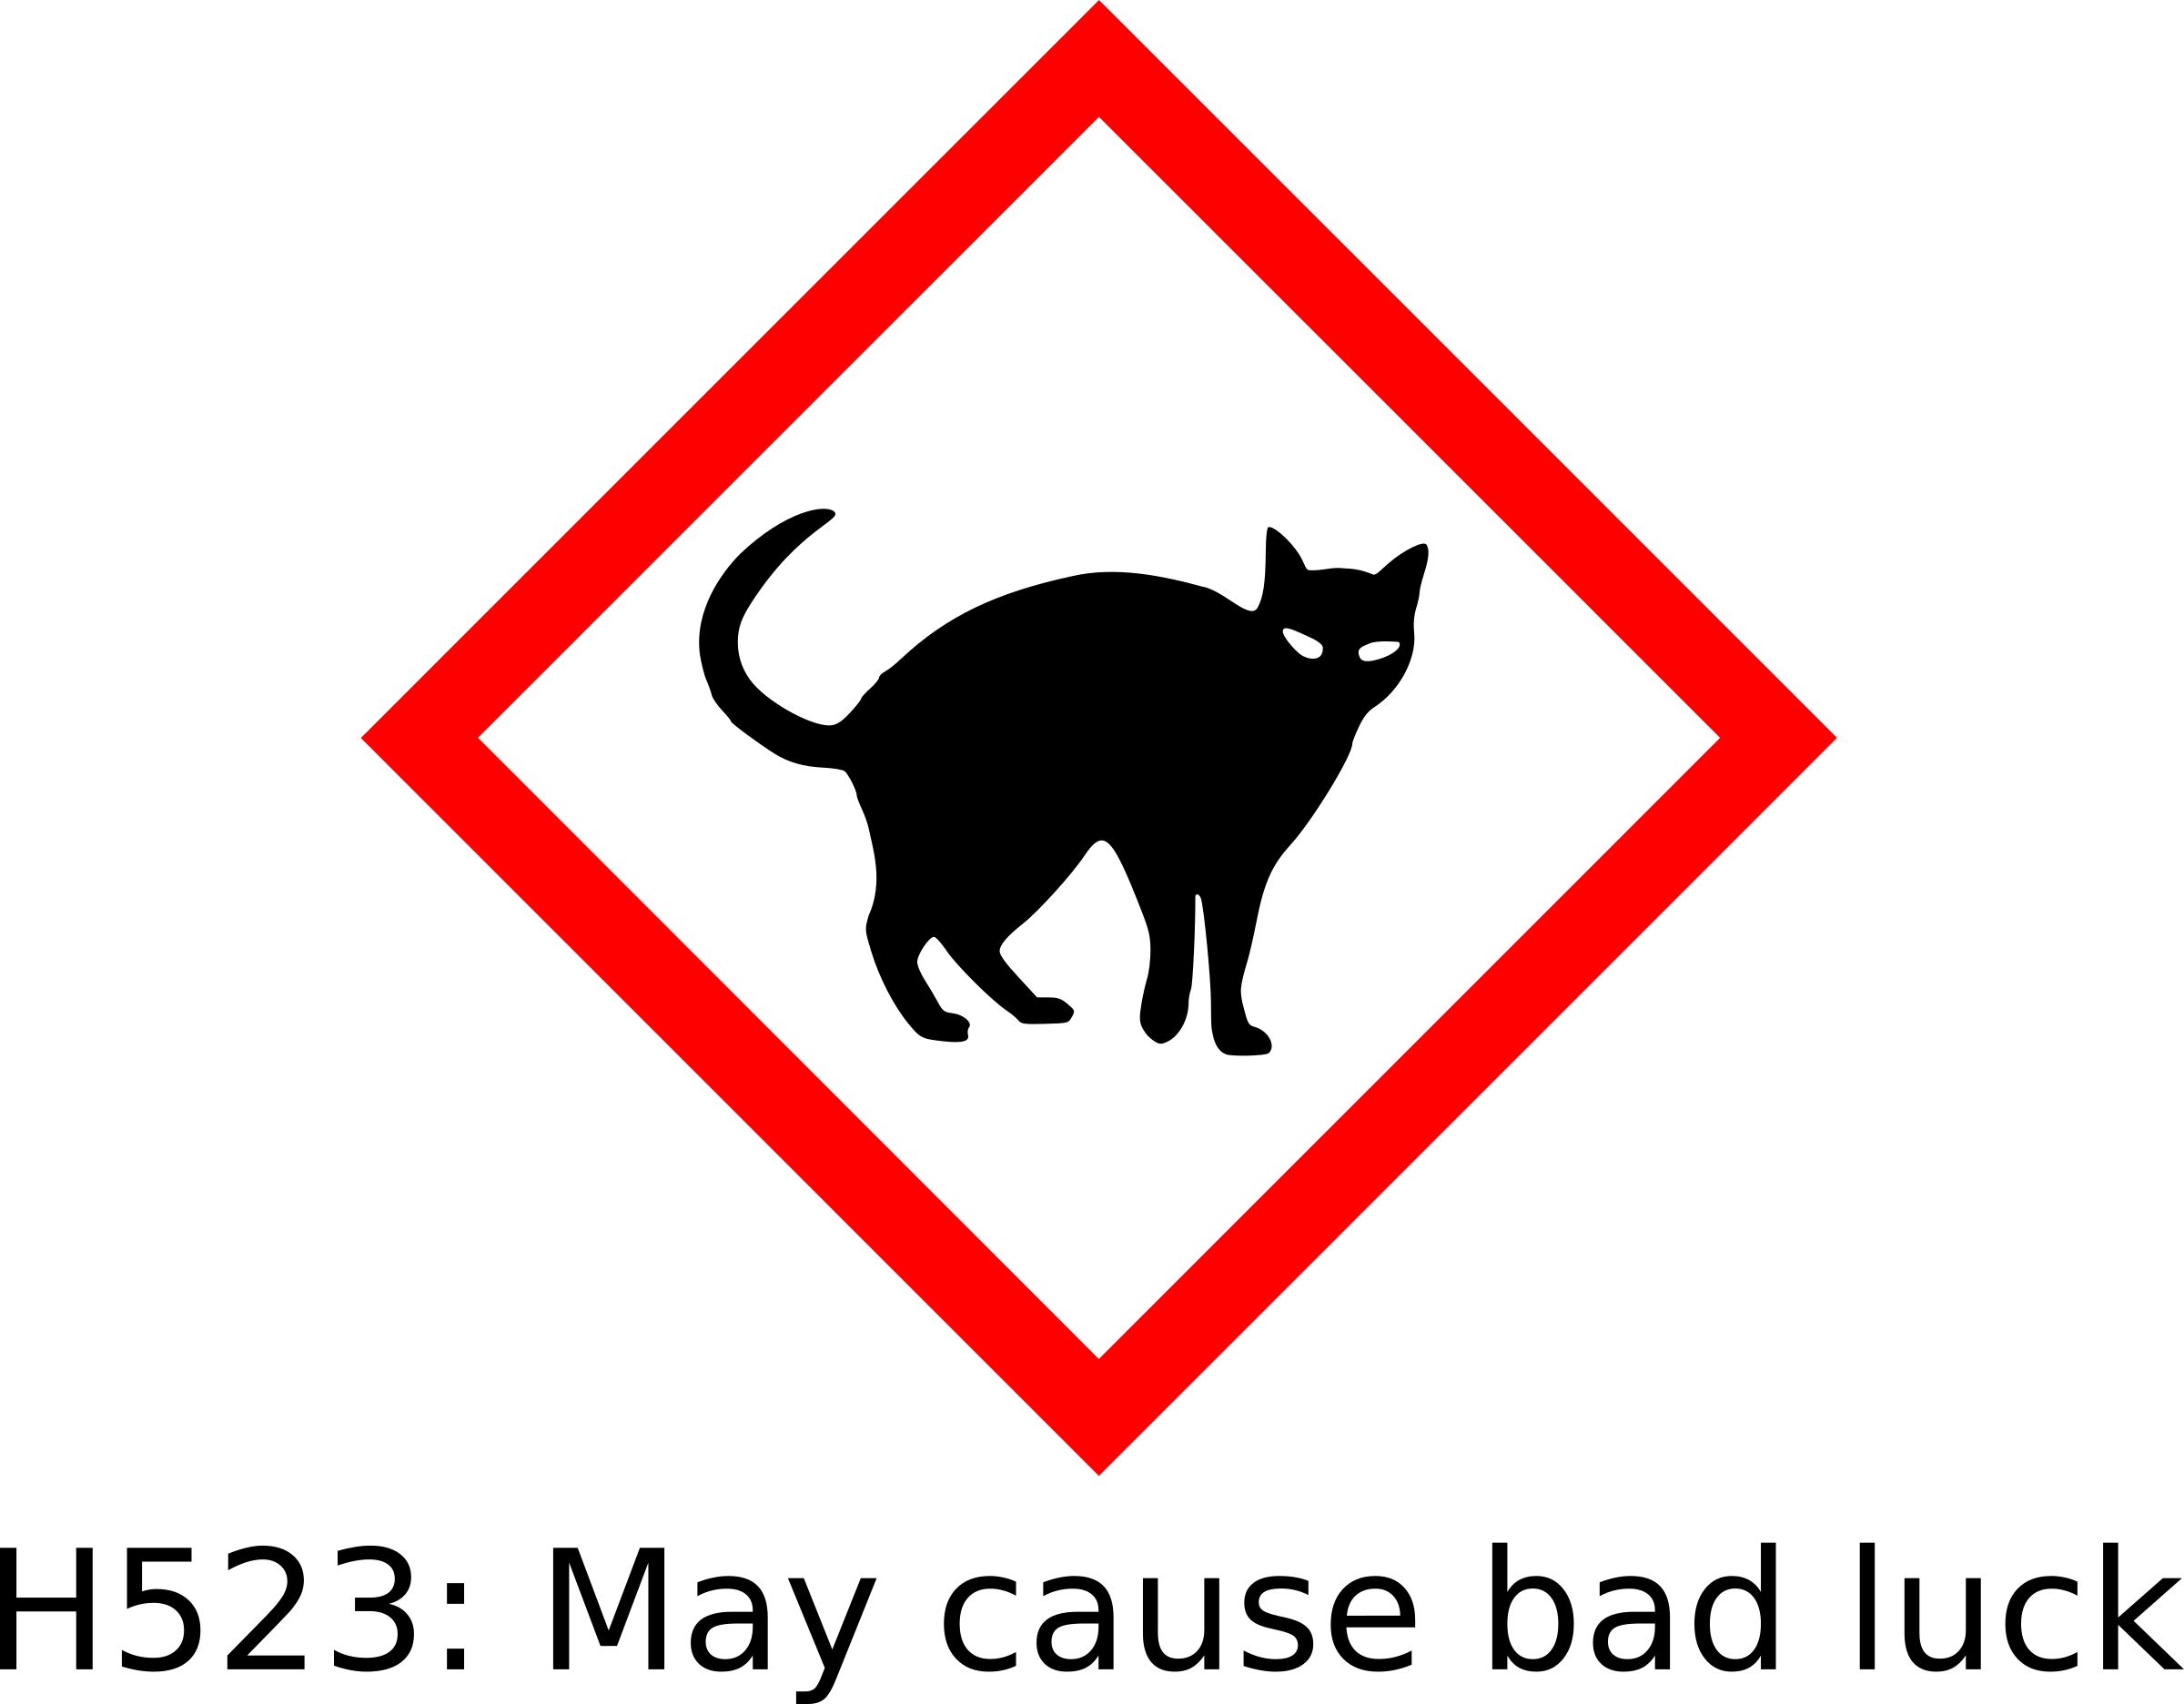 Black cat hazard by Firkin